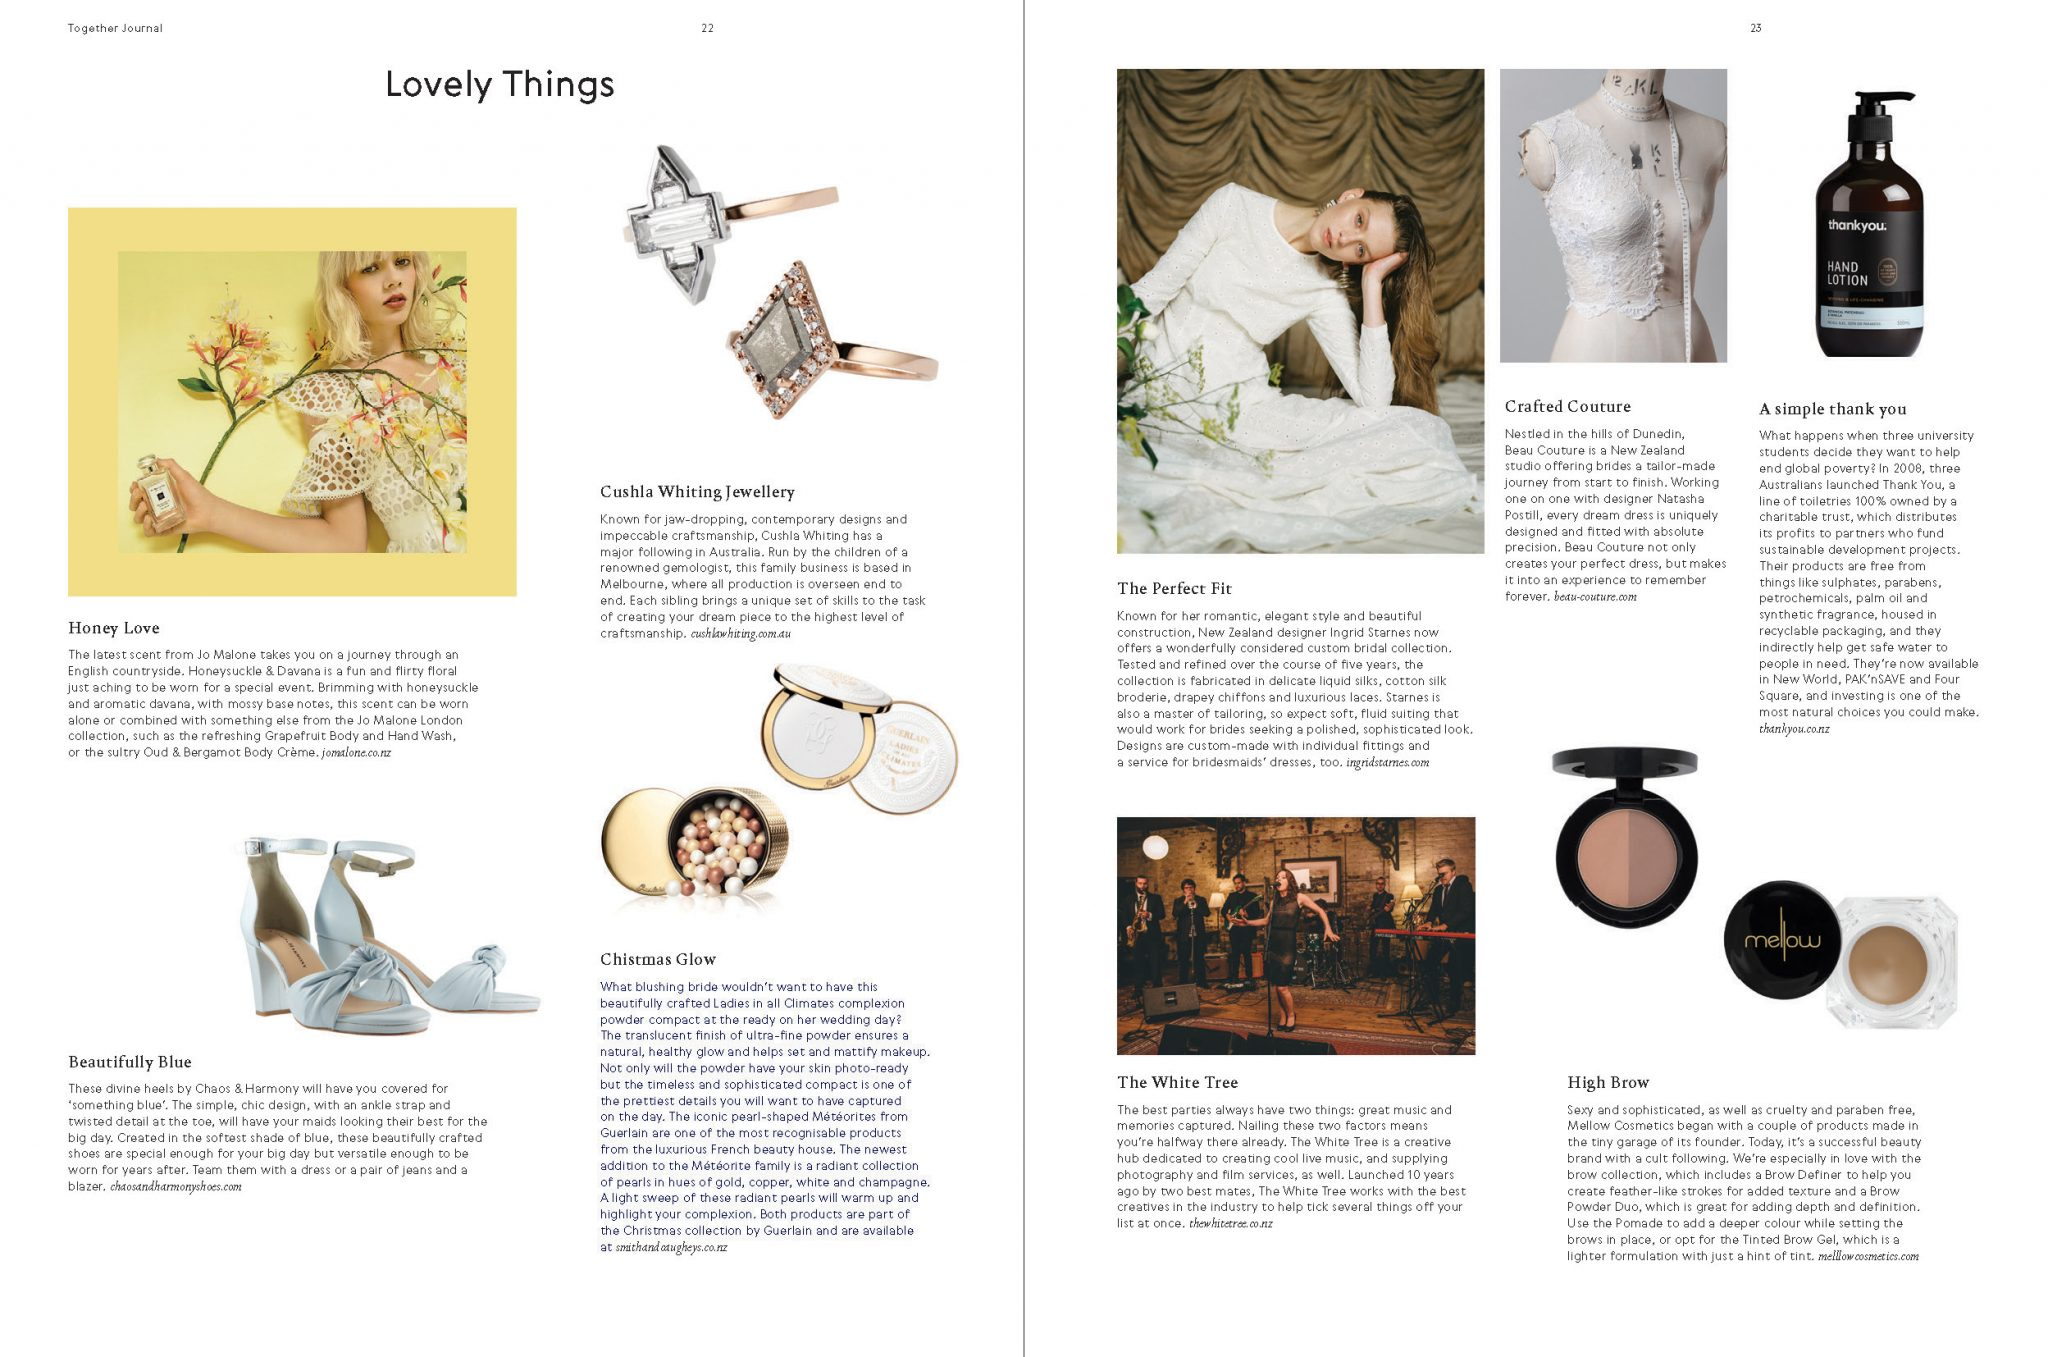 Categories: Inspiration-Lovely Things Issue 13